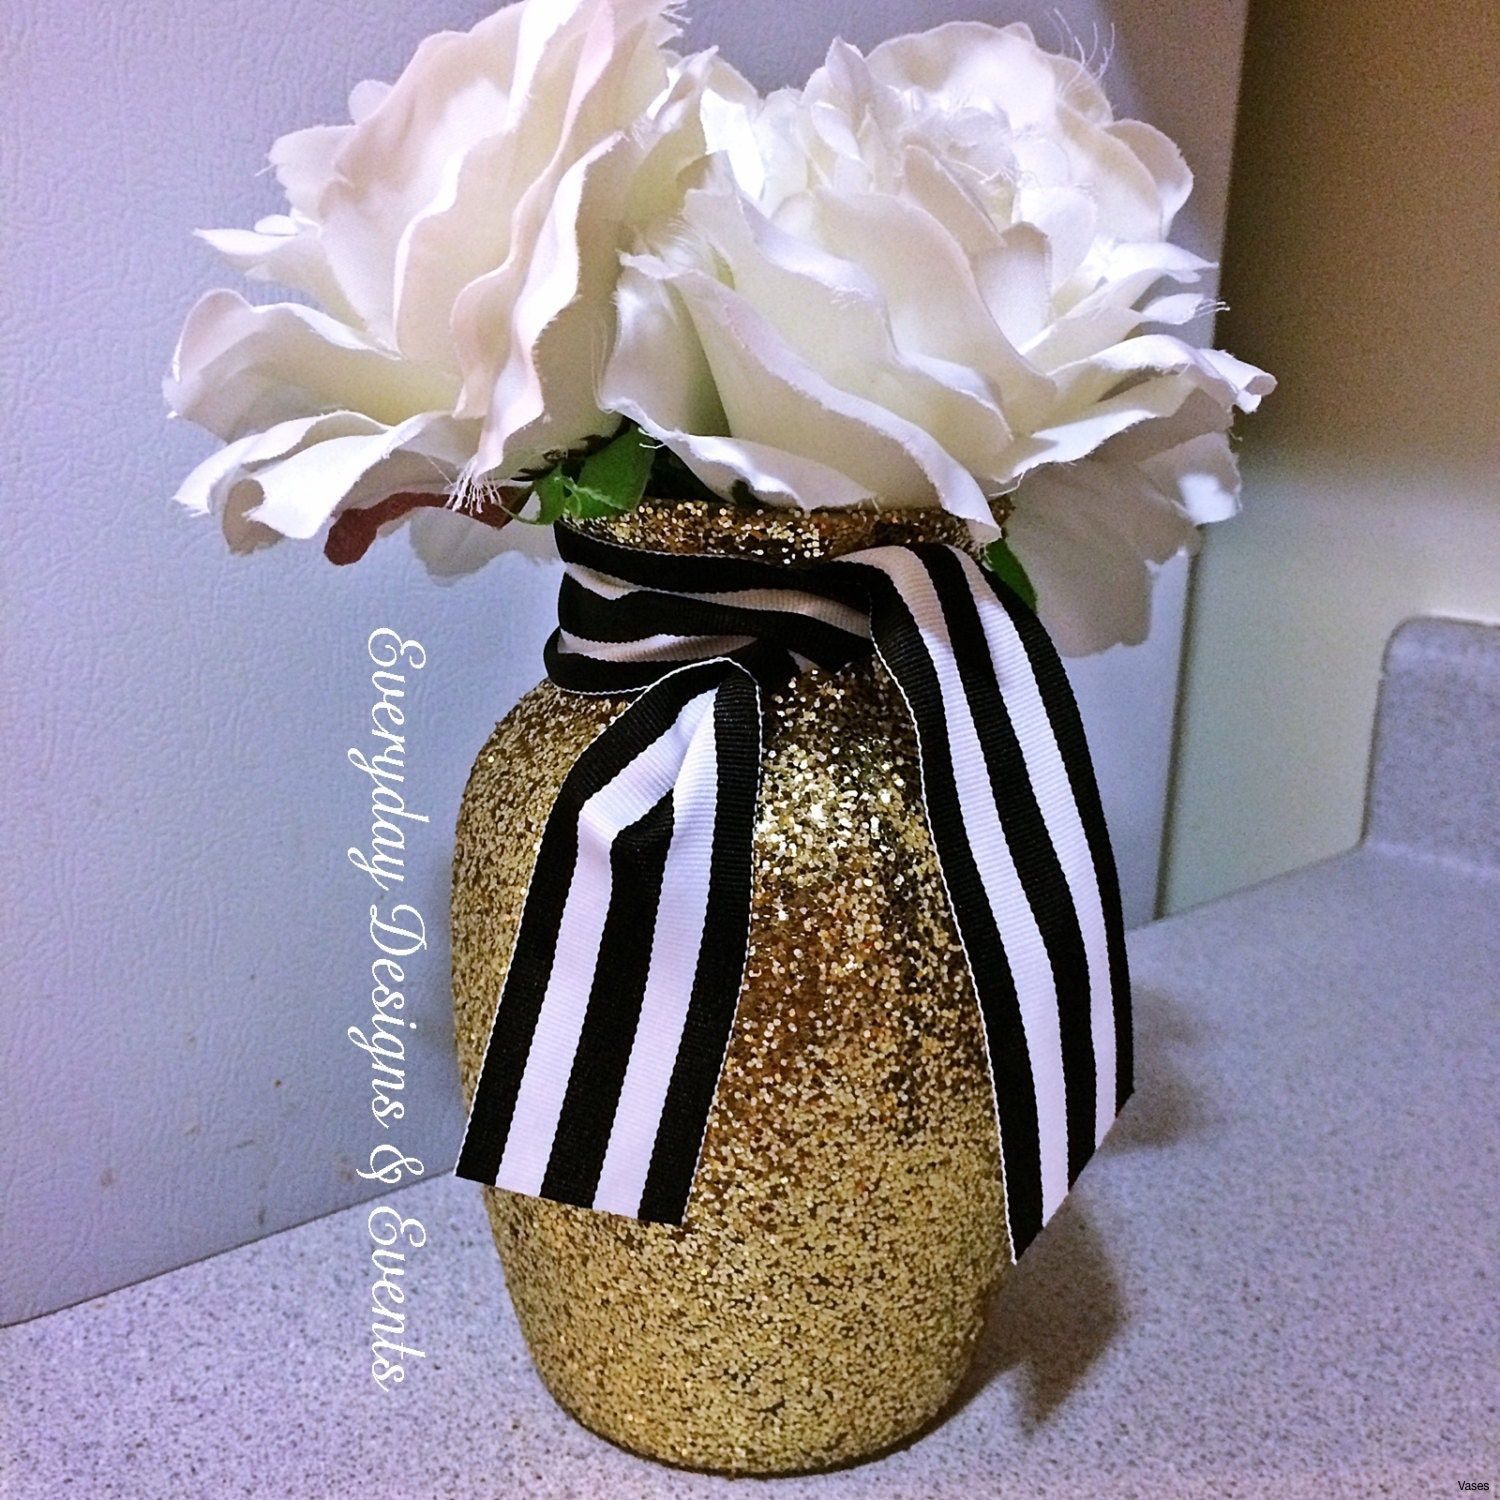 rose gold glitter vase of white and gold vase awesome luxury flower picture in black and white throughout white and gold vase awesome luxury flower picture in black and white